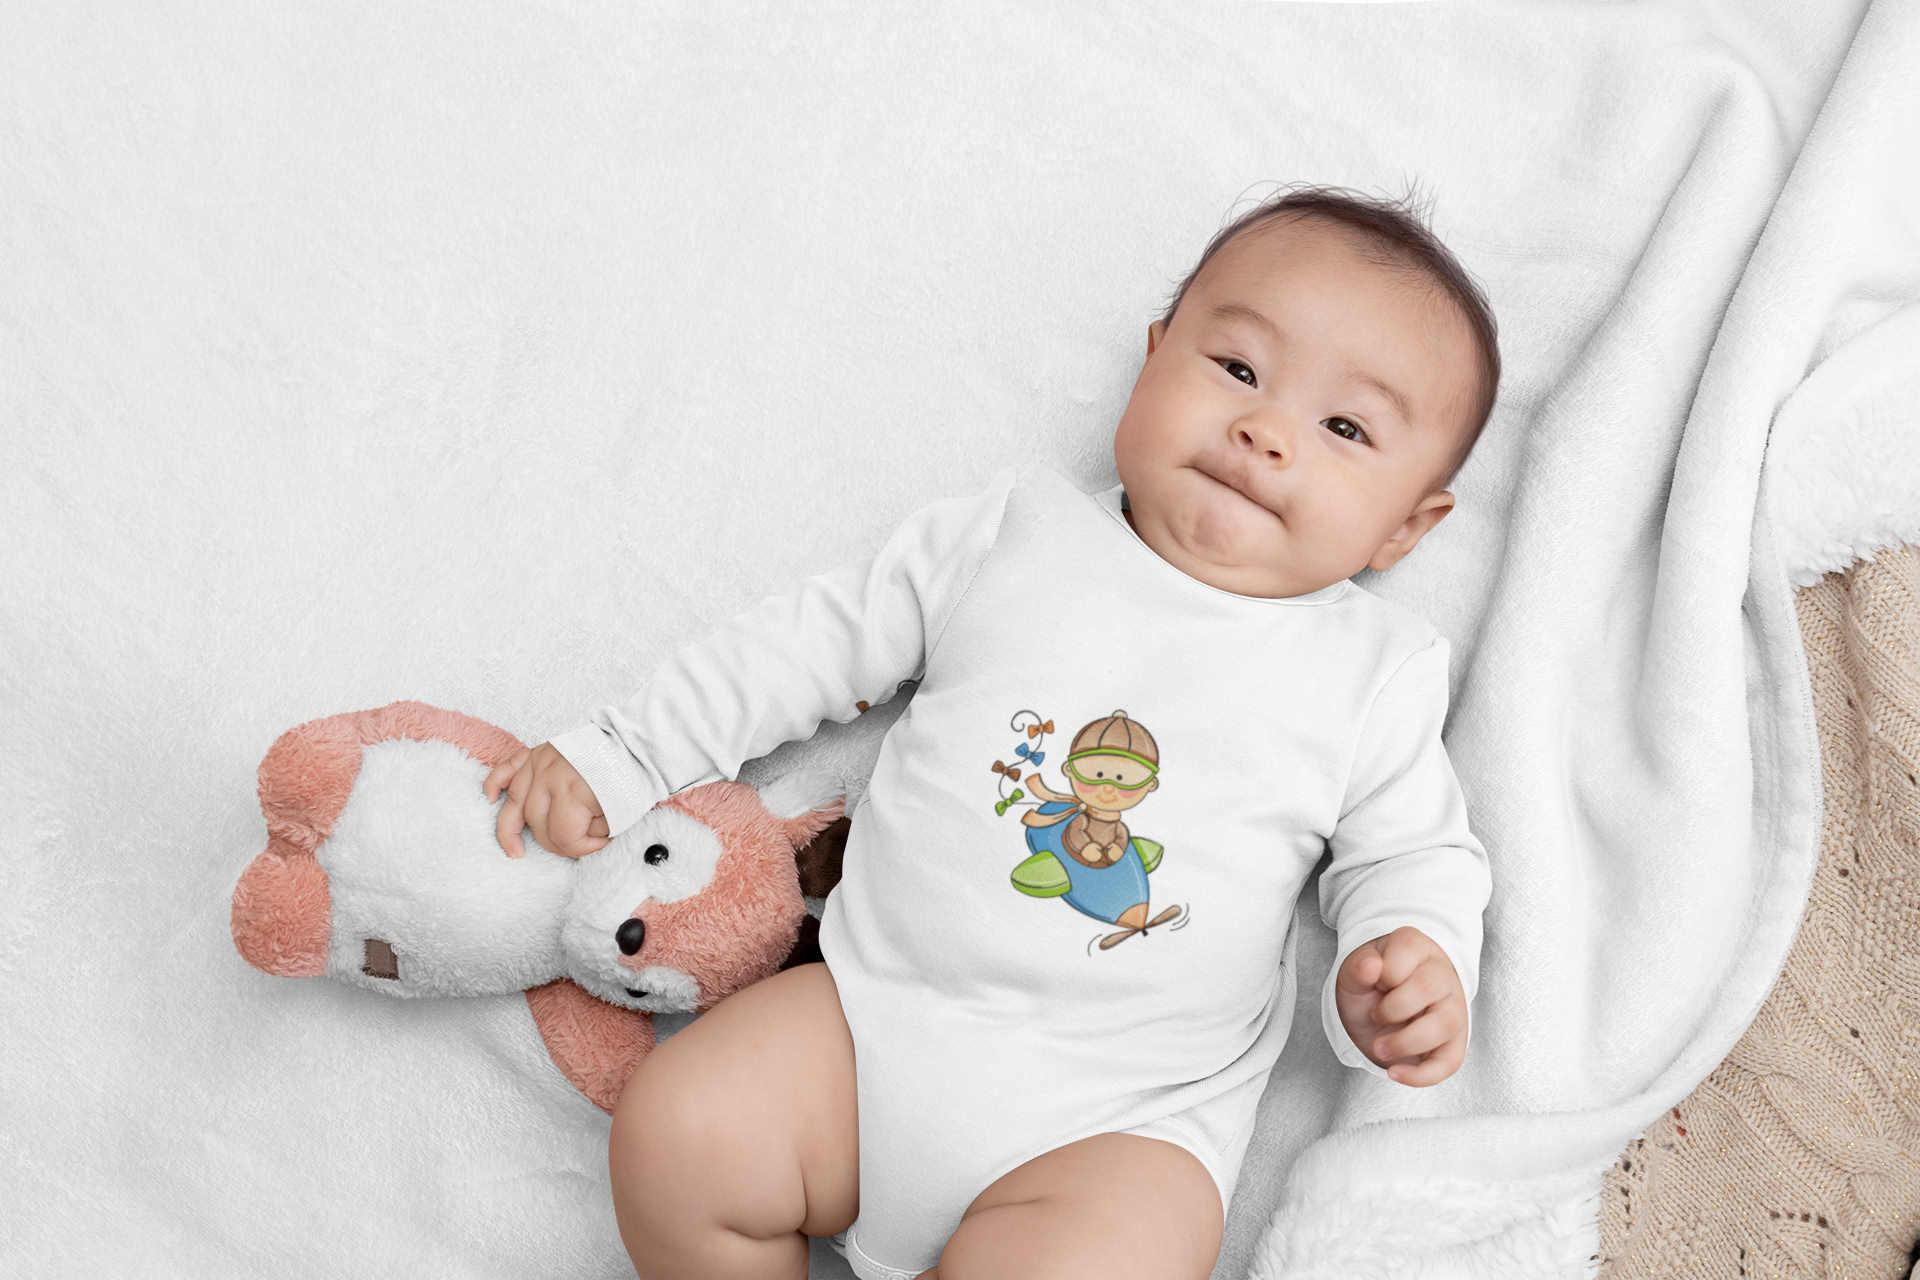 Embroidered baby clothing with Pilot design